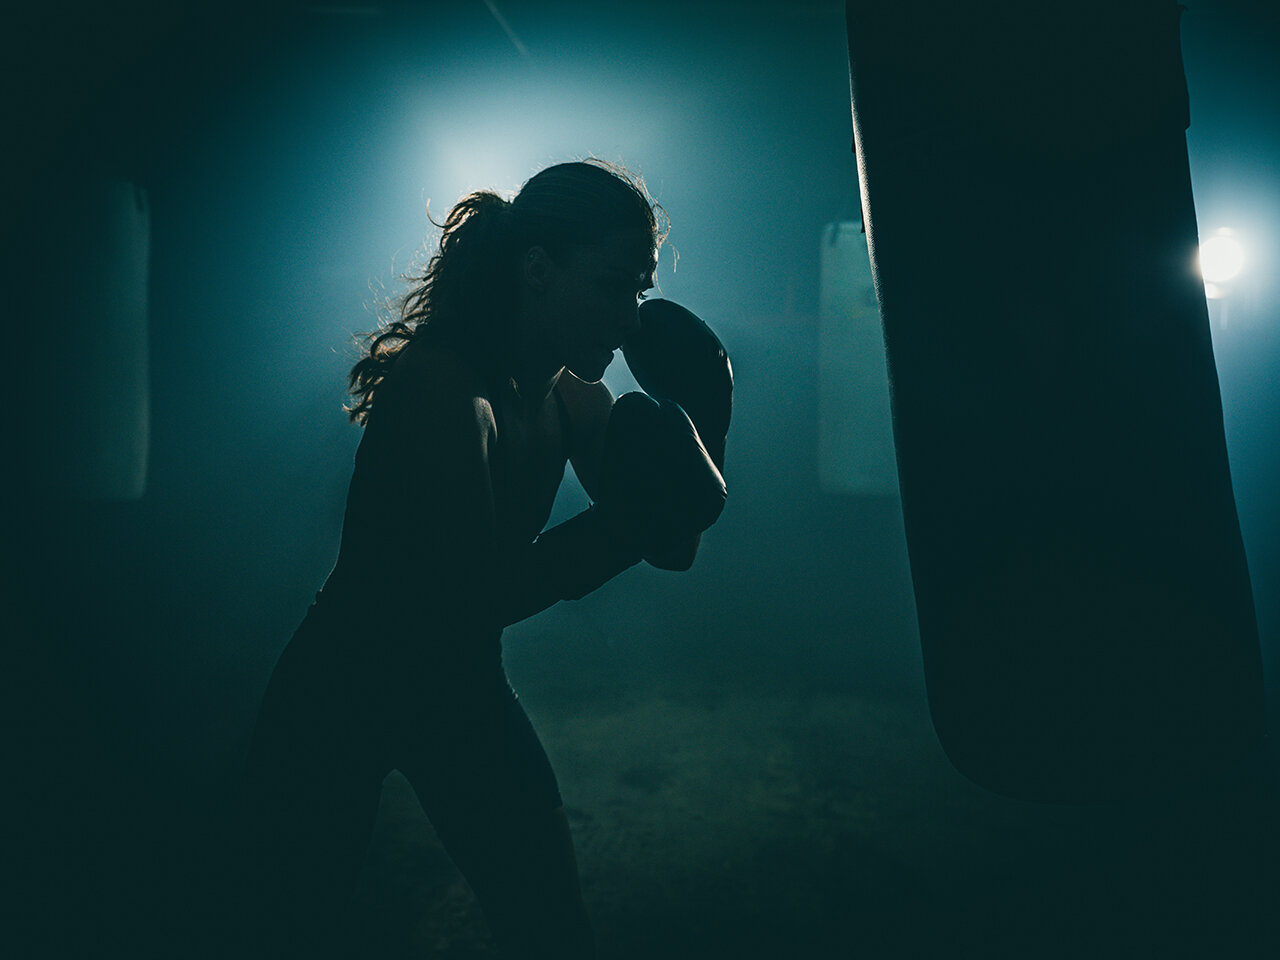 woman-boxing-suppressed-anger.jpg